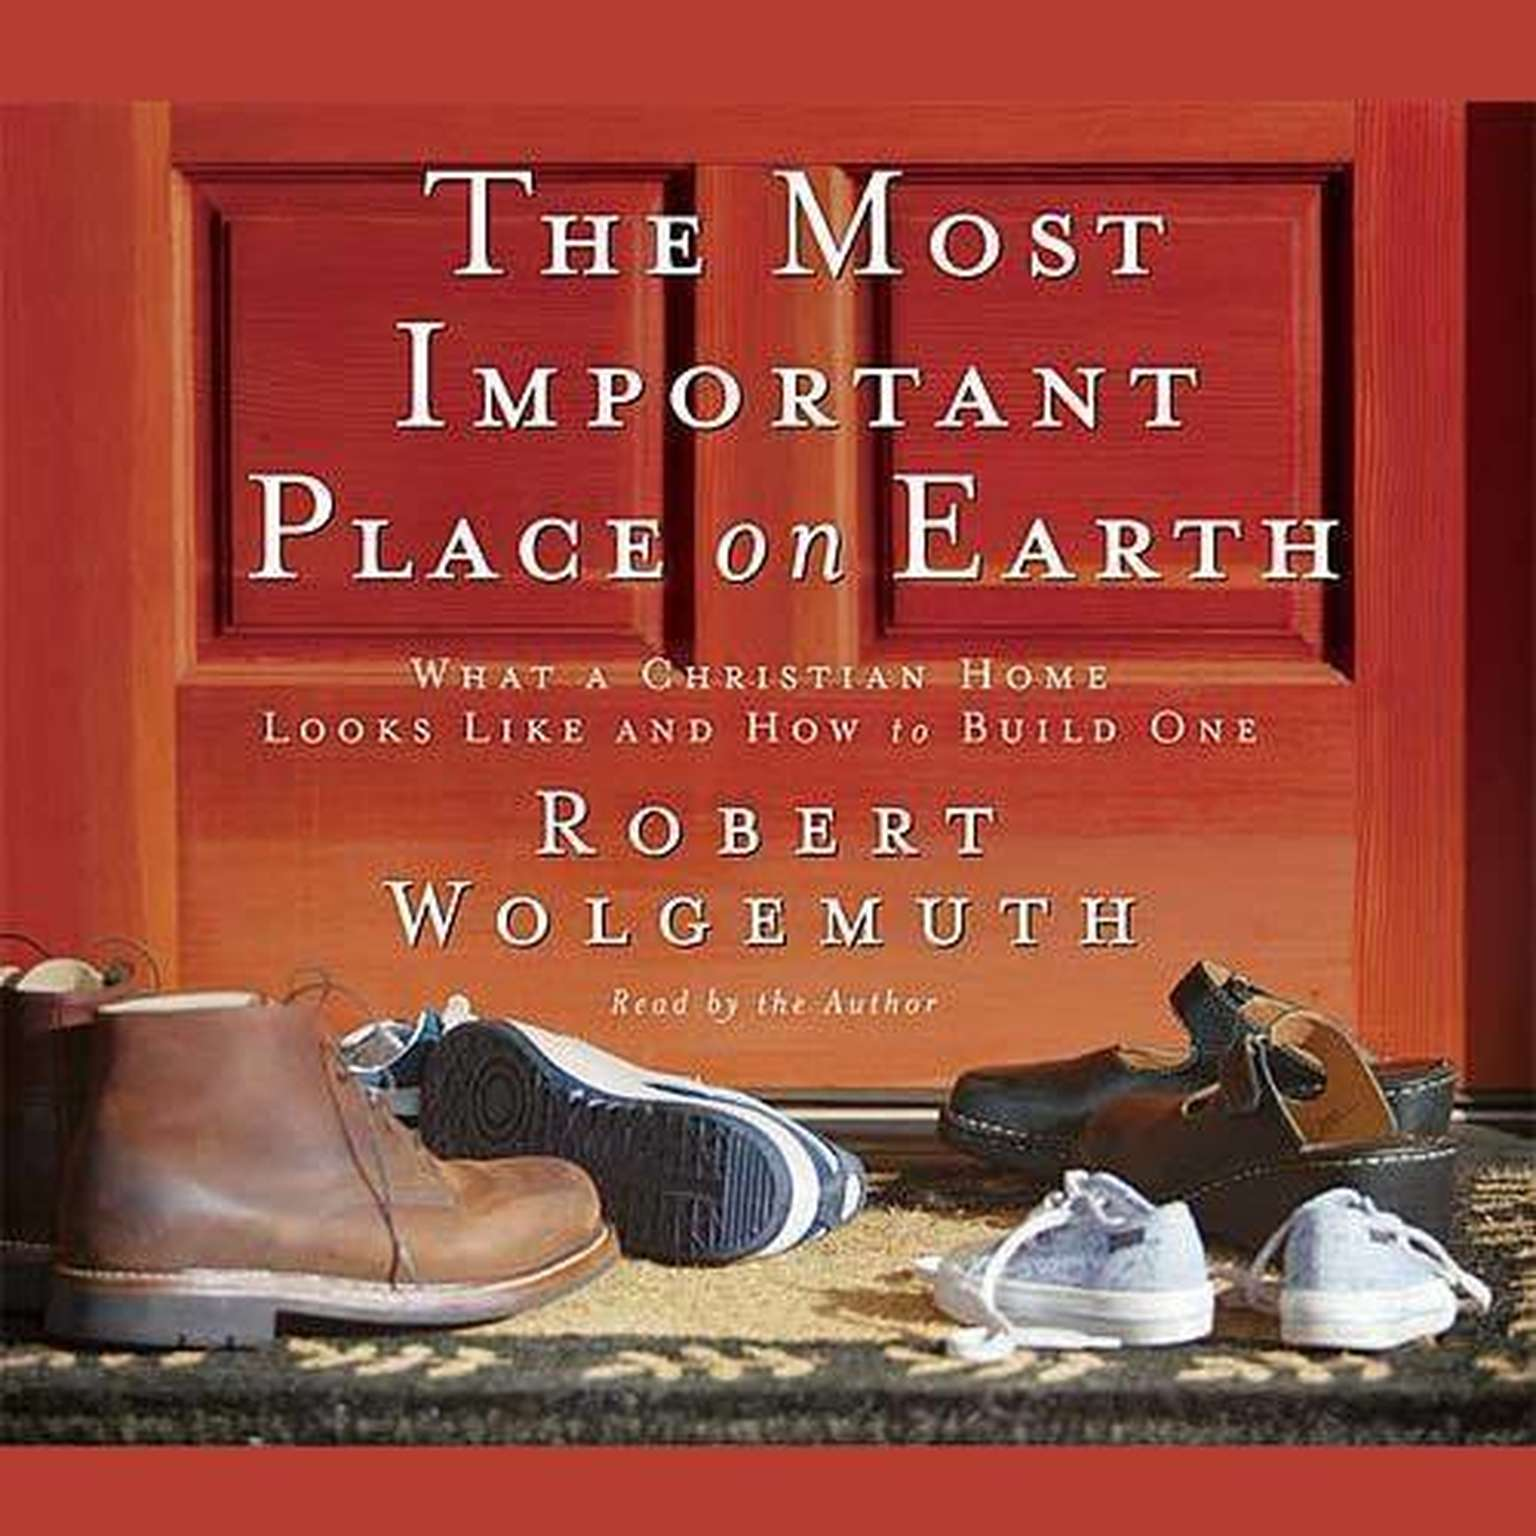 Printable The Most Important Place on Earth: What a Christian Home Looks like and How to Build One Audiobook Cover Art